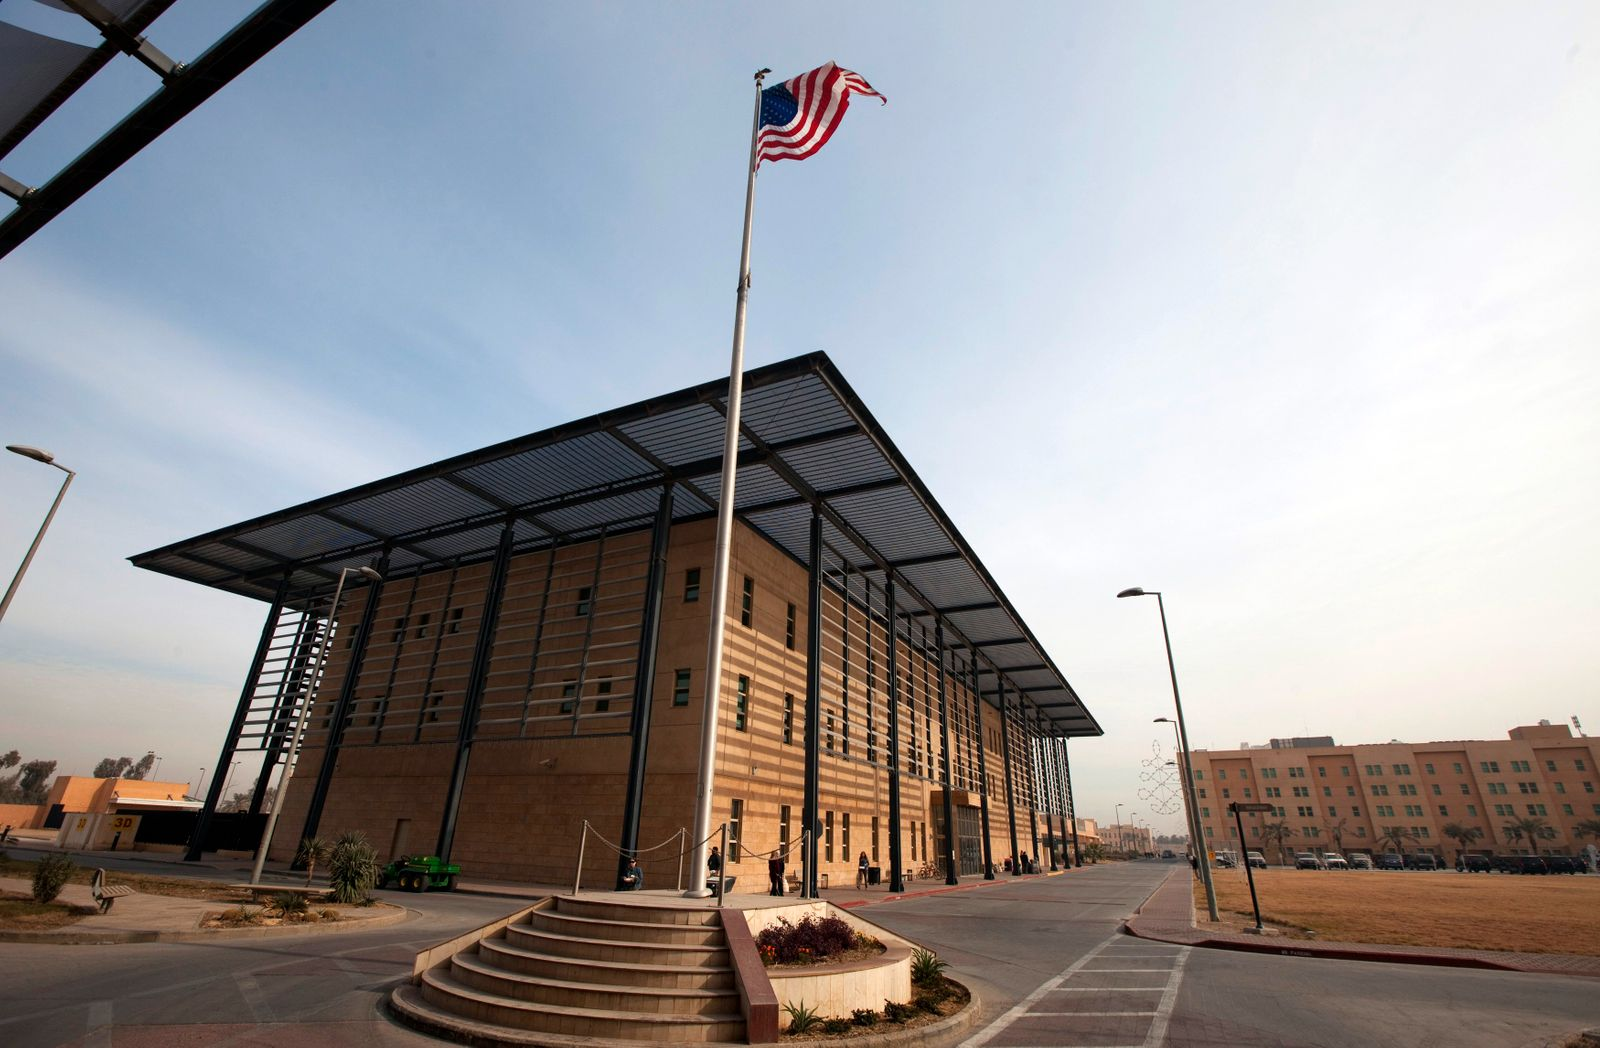 File photo of a U.S. flag flying in front of the Annex I building inside the compound of the U.S. embassy in Baghdad